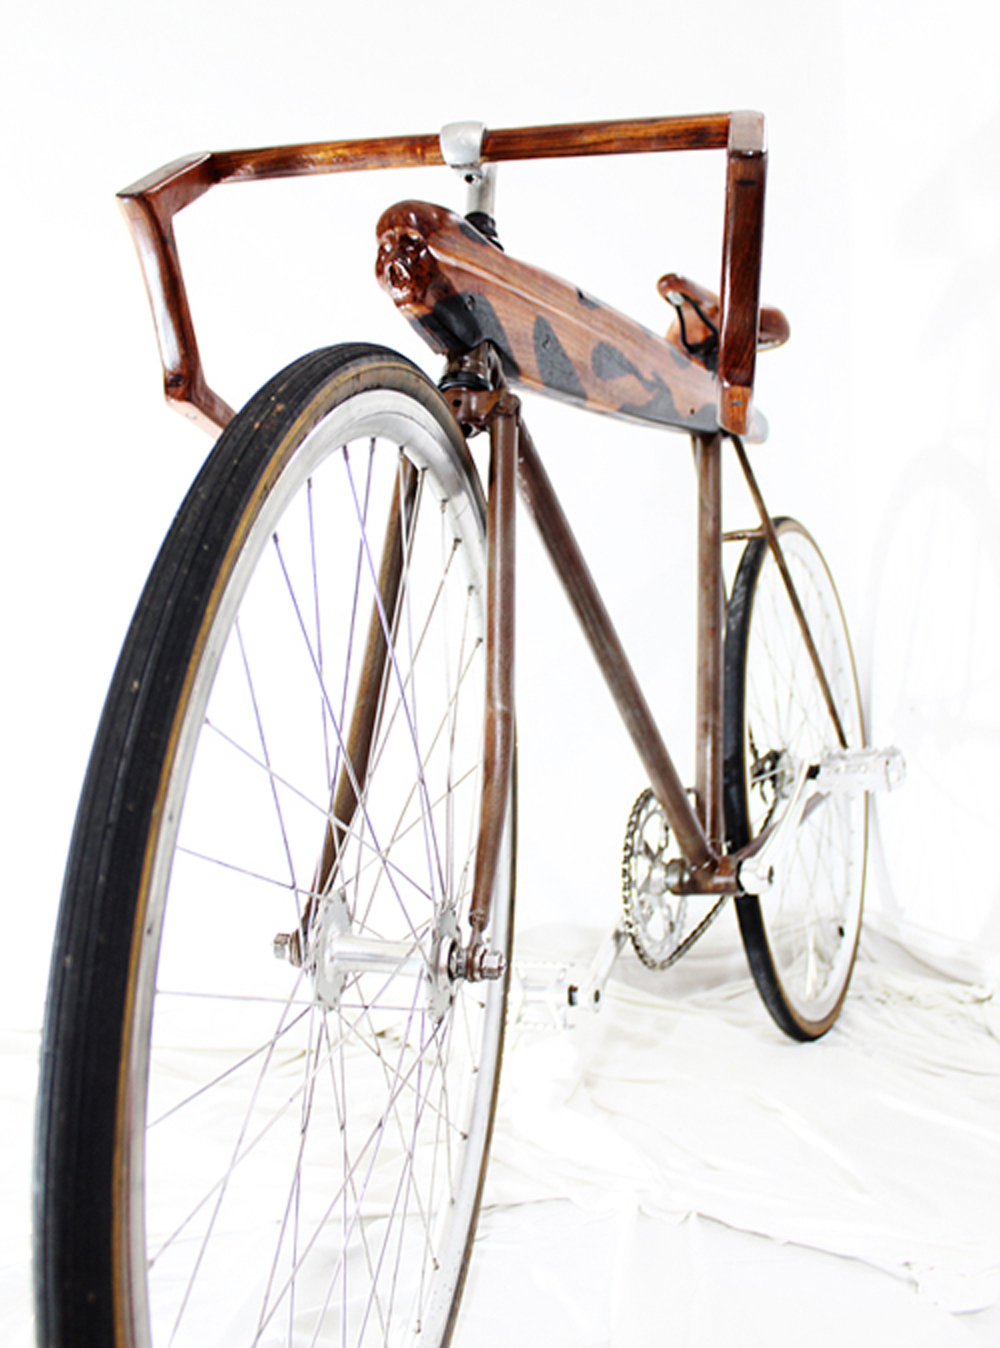 A custom built bike made by Beto Janz.